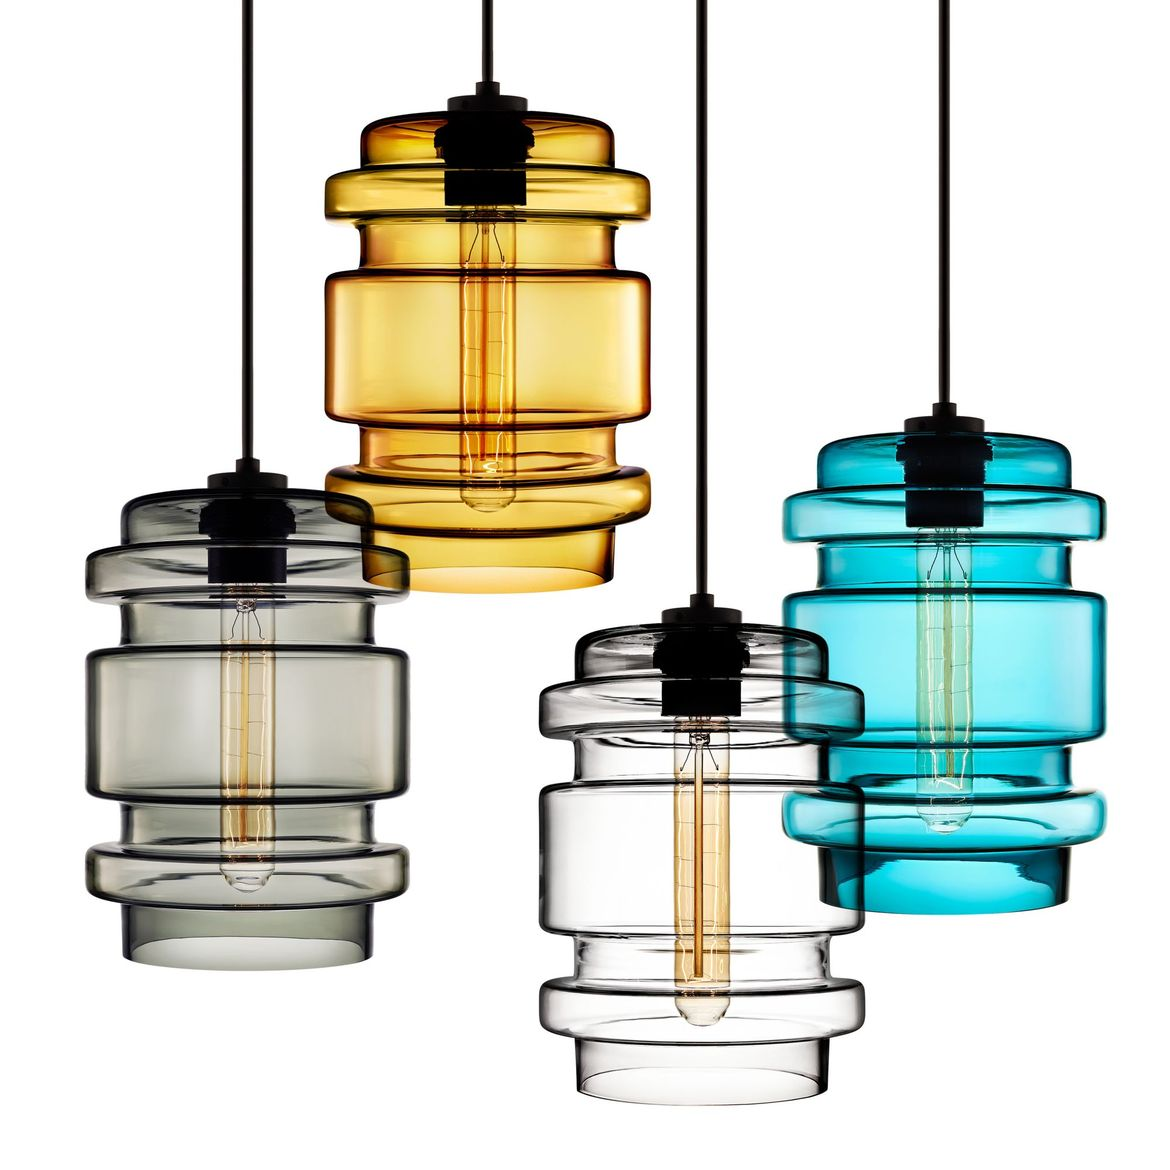 Sculptural and angular pendant light made from handblown glass